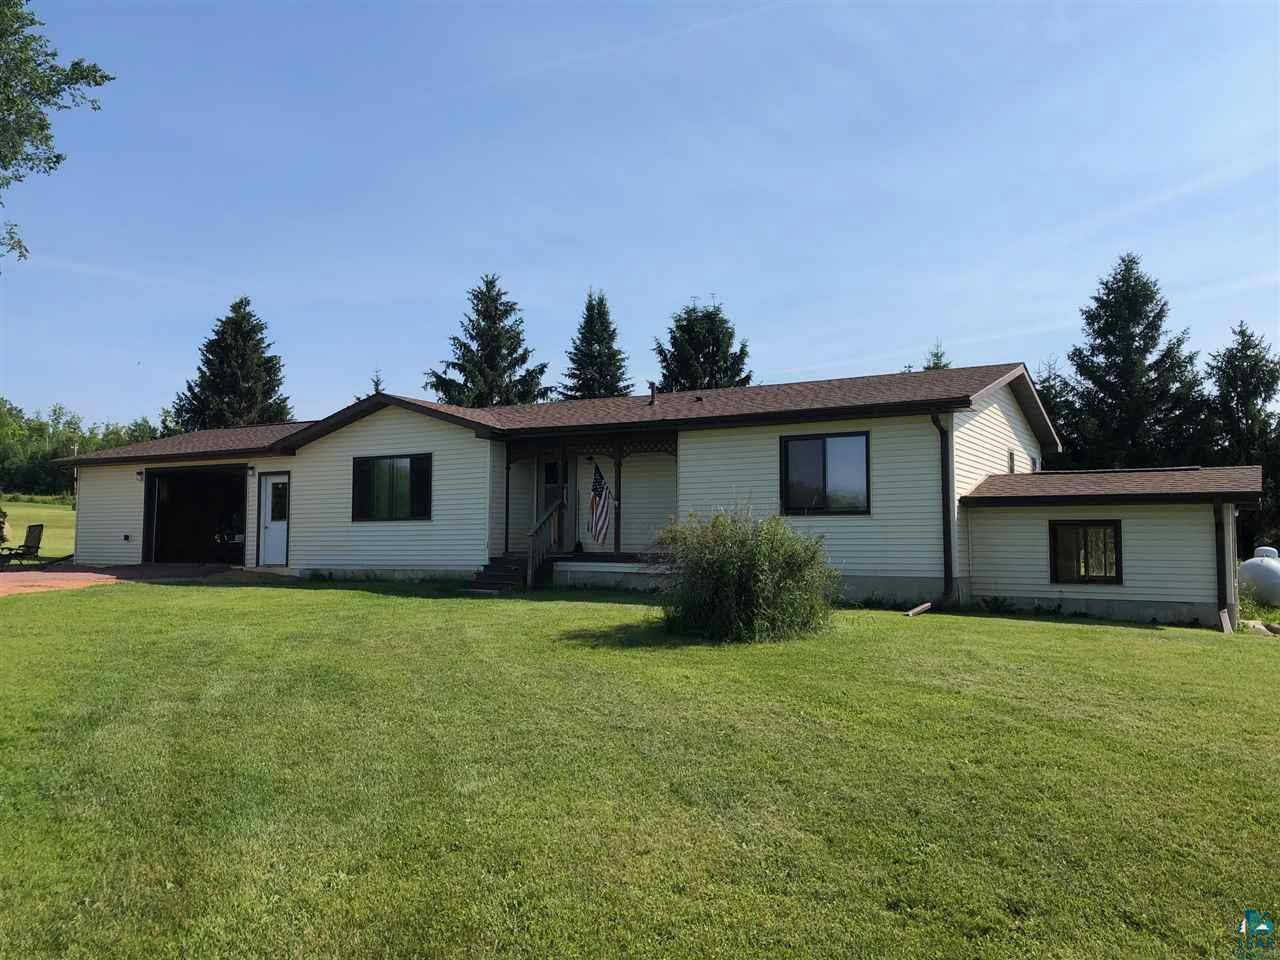 Ranch style home on 40 acres in a beautiful location. This home features a new attached garage with in-floor heat.  Spacious living room connected to the dining area and kitchen.  Full basement with a walkout for more living space.  Basement has potential for finishing and using for more rooms,   Large pole building and fences for animals. Very private location and located on a dead end rd. Partially finished basement has great potential for extra living space and a 3rd bedroom. With field and outbuildings, this property could make an ideal hobby farm! Great hunting, as well.  Possibilities are endless!